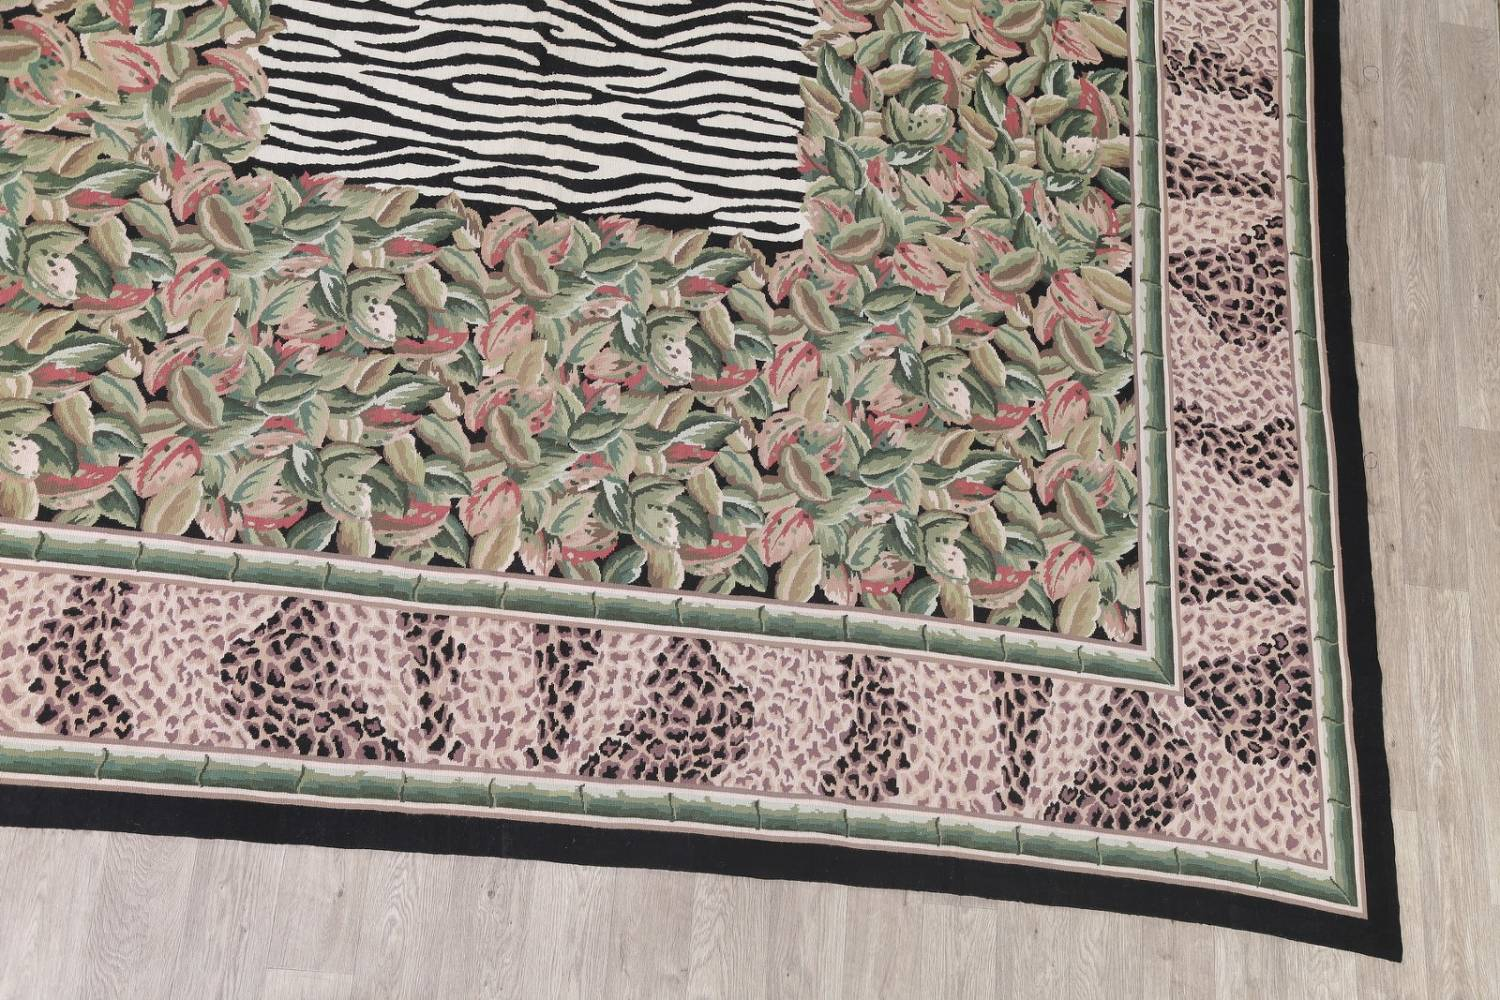 Transitional Animal Print Aubusson Oriental Hand-Woven Area Rug 12x15 image 6